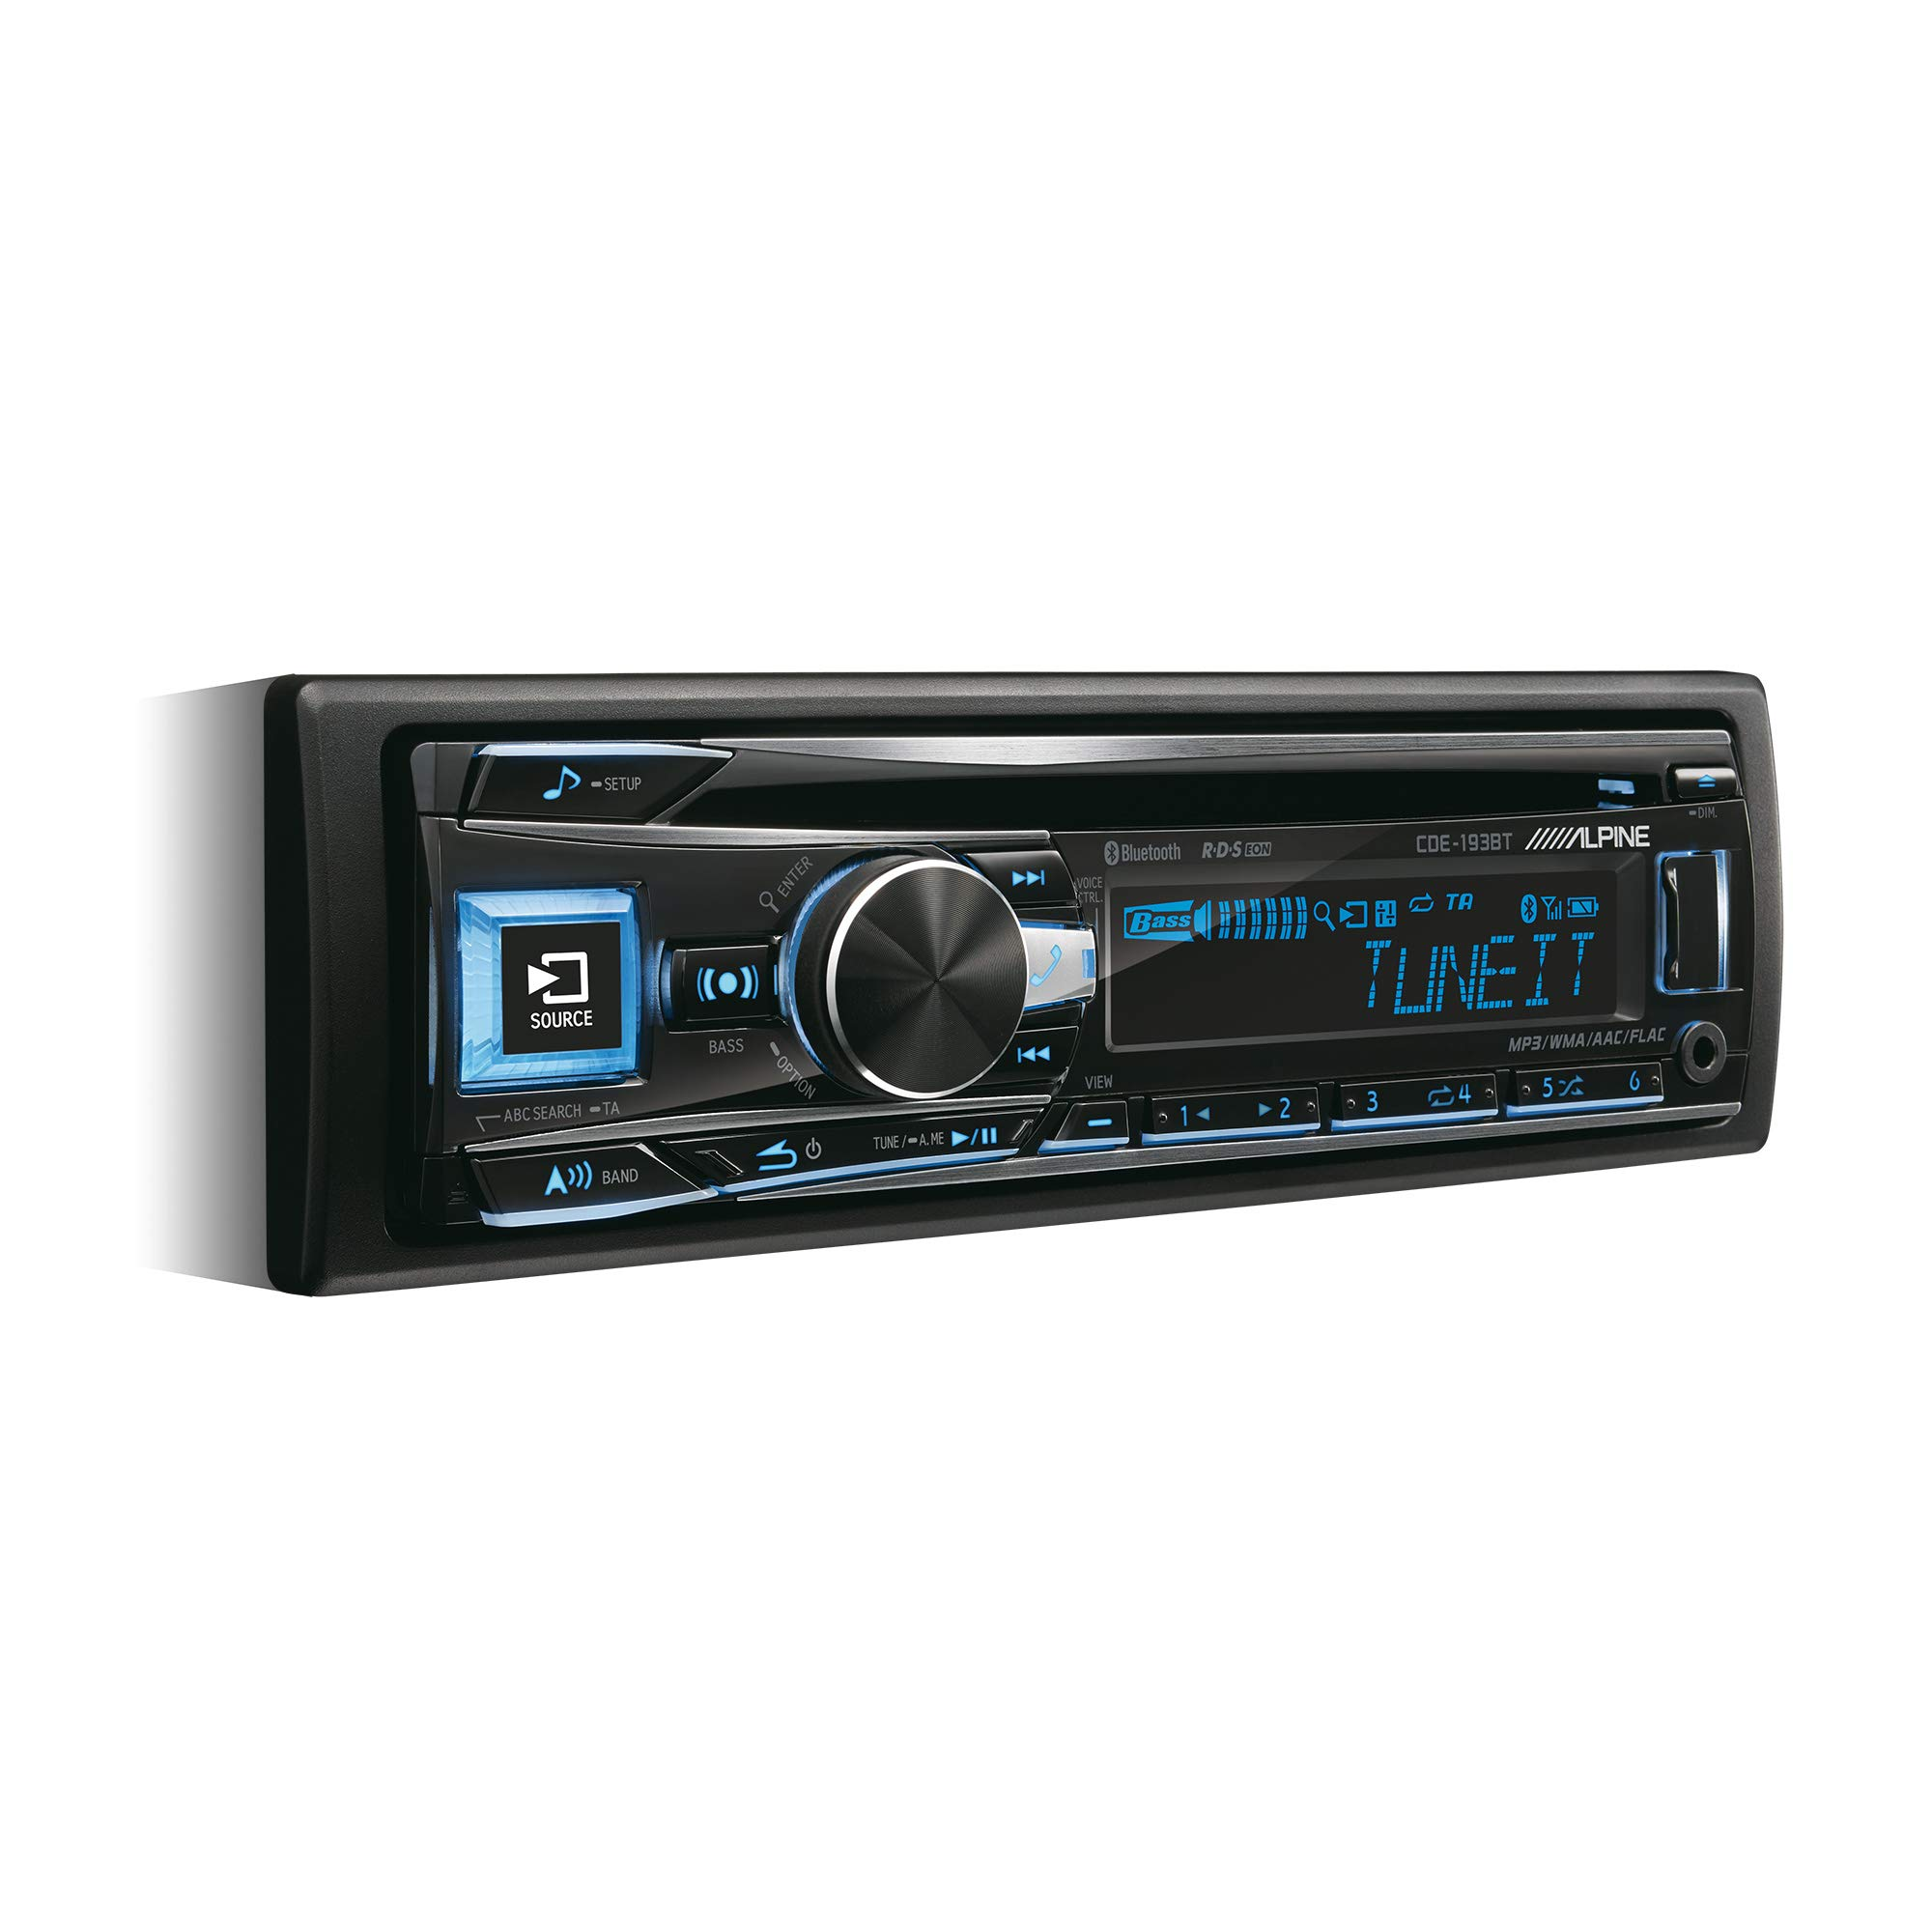 Alpine CDE-193BT Autoradio Bluetooth avec CD/MP3/USB Frontal et entrées AUX product image